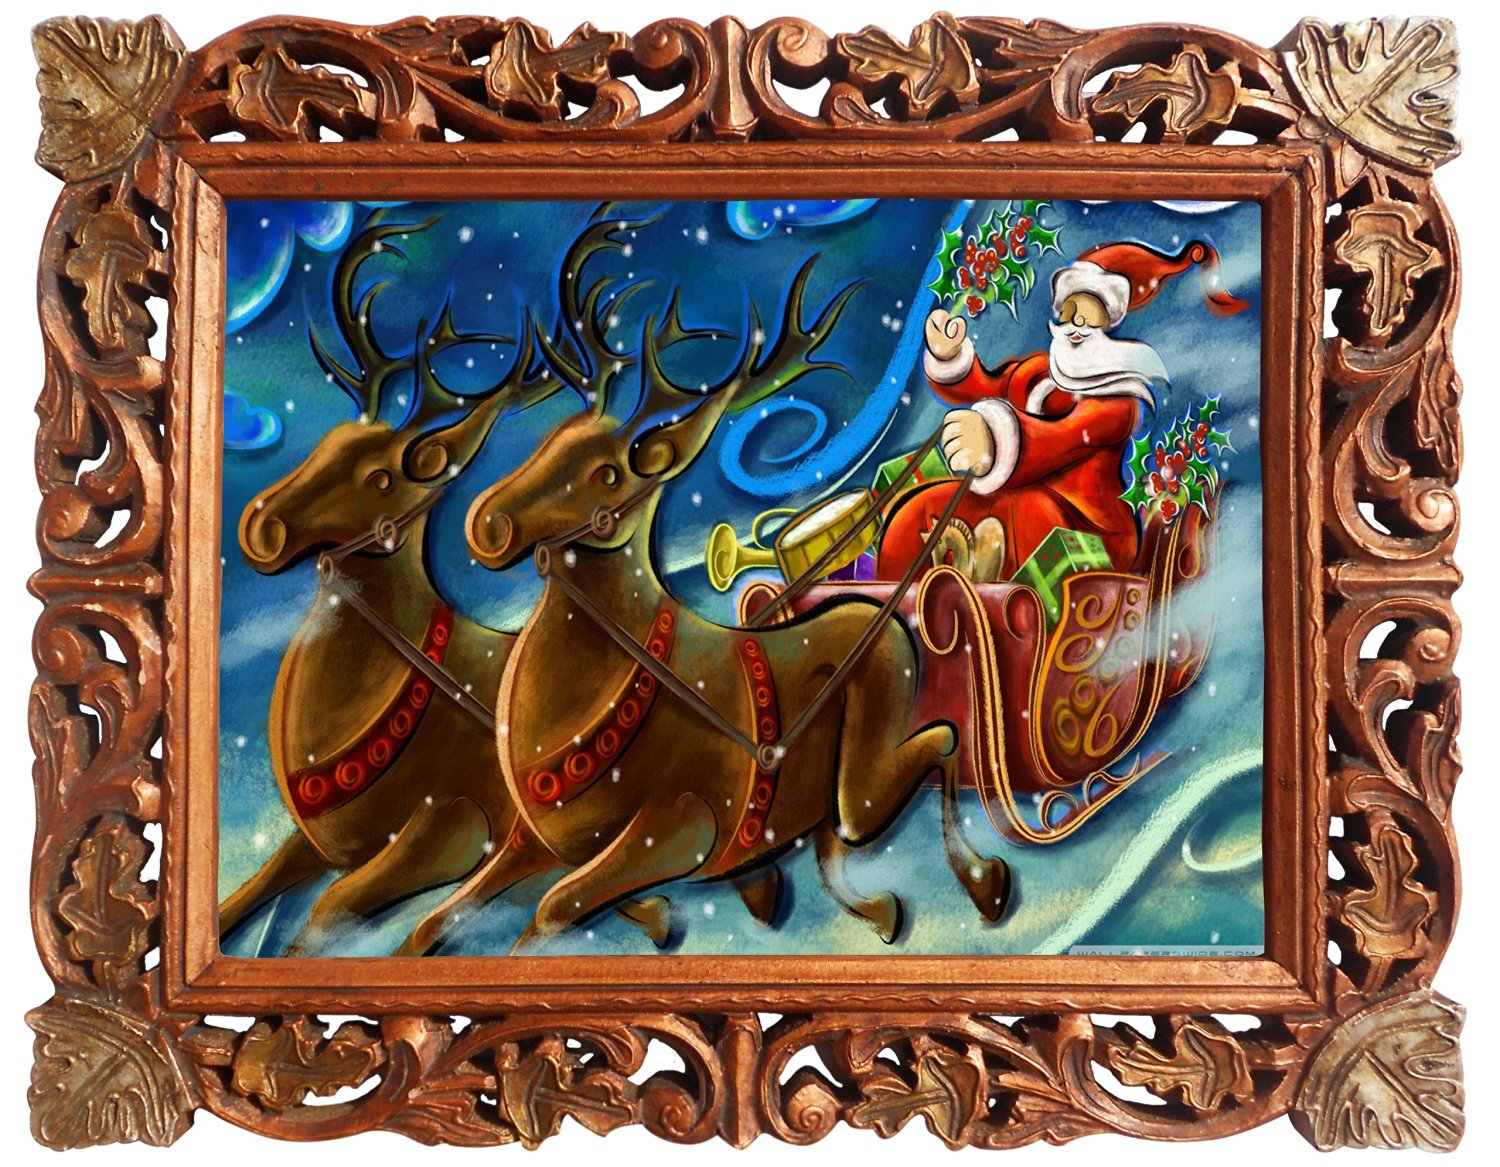 Santa Claus and His Reindeer, Poster Framed in Wood Craft Frame, Indian Wood Decorative Frame